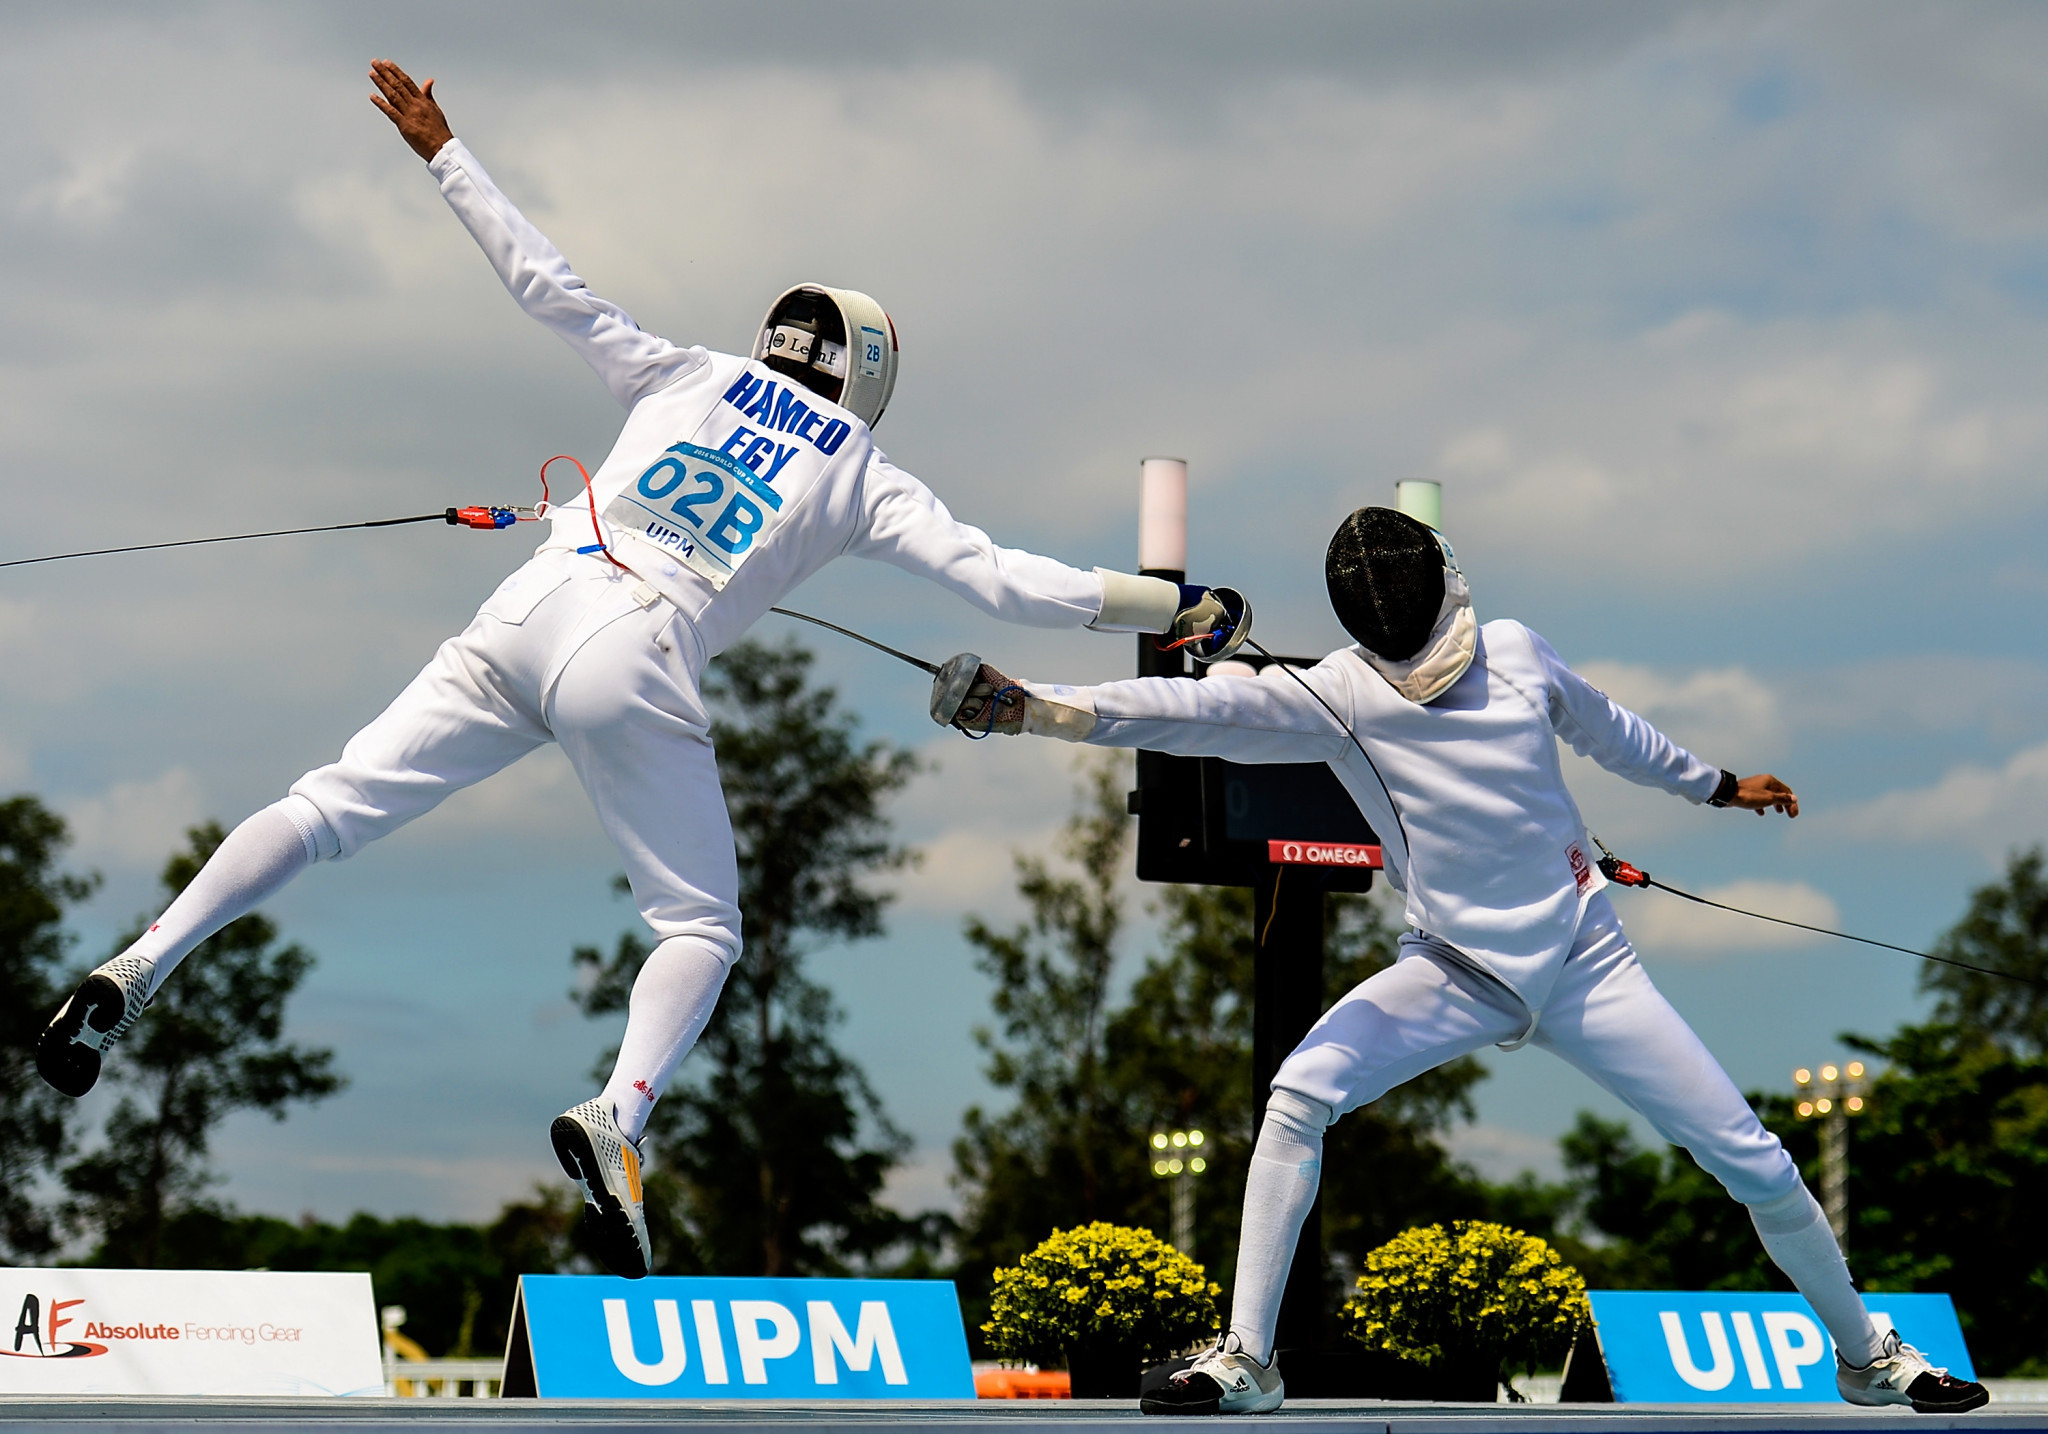 Egypt claim mixed relay title at UIPM Modern Pentathlon World Championships